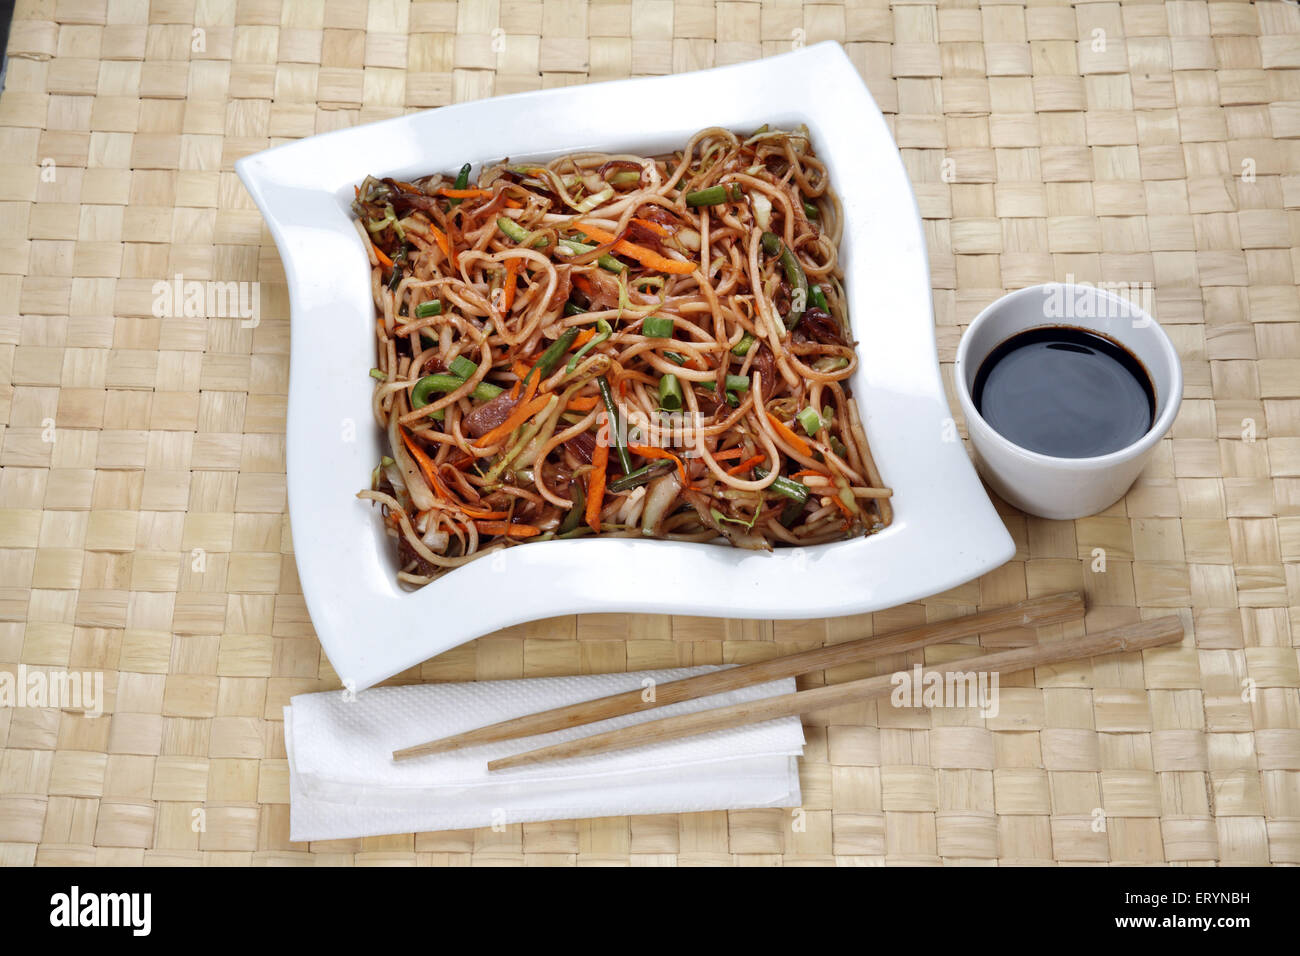 Chinese Food  Vegetable Noodles with Soya Sauce India PR#743AH - Stock Image